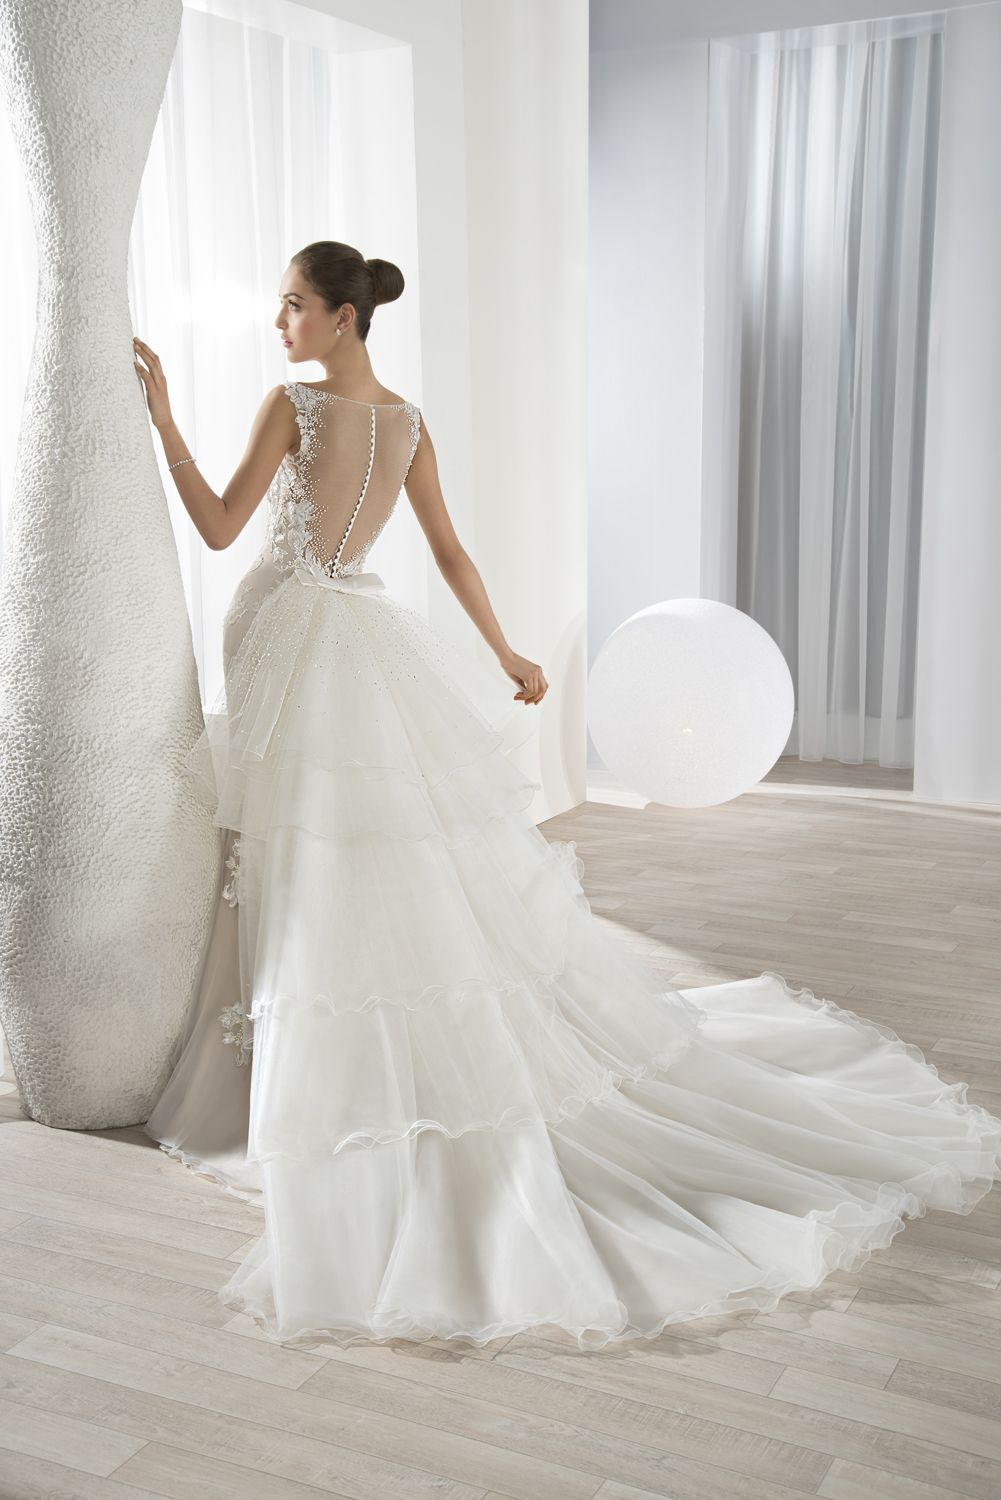 Formfitting lace gown with illusion back and button